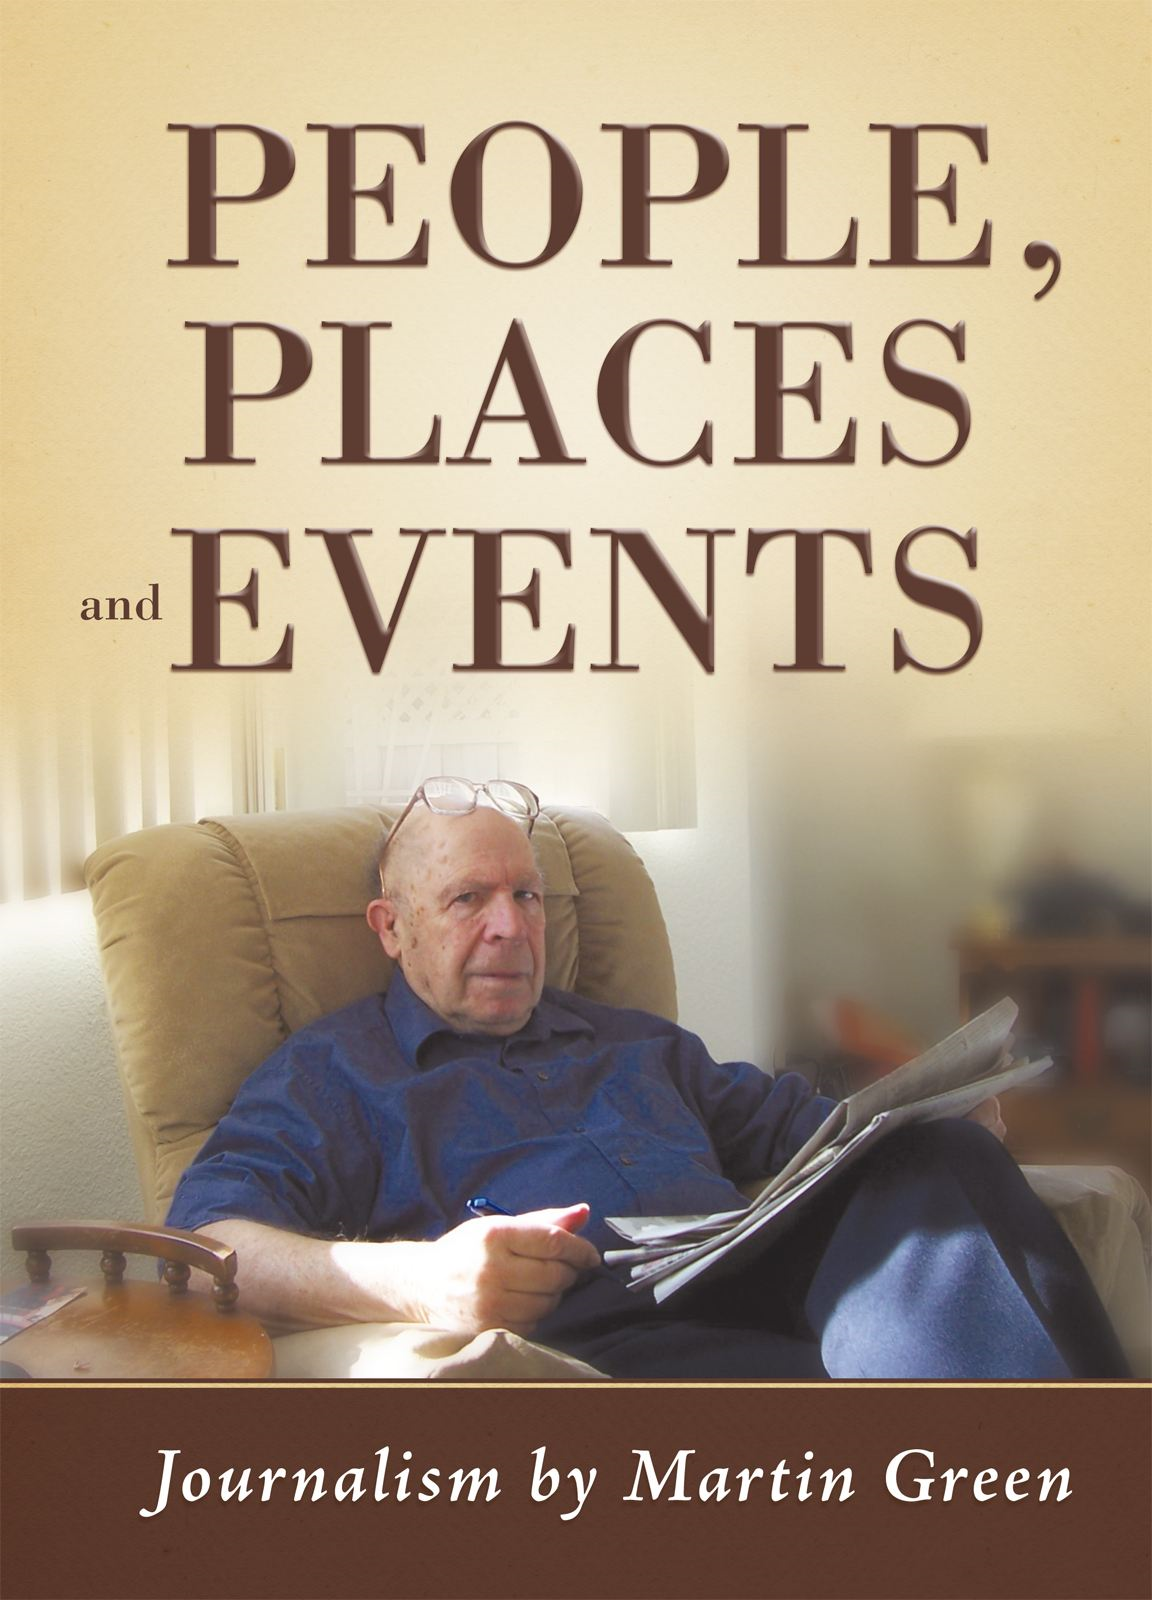 People, Places and Events